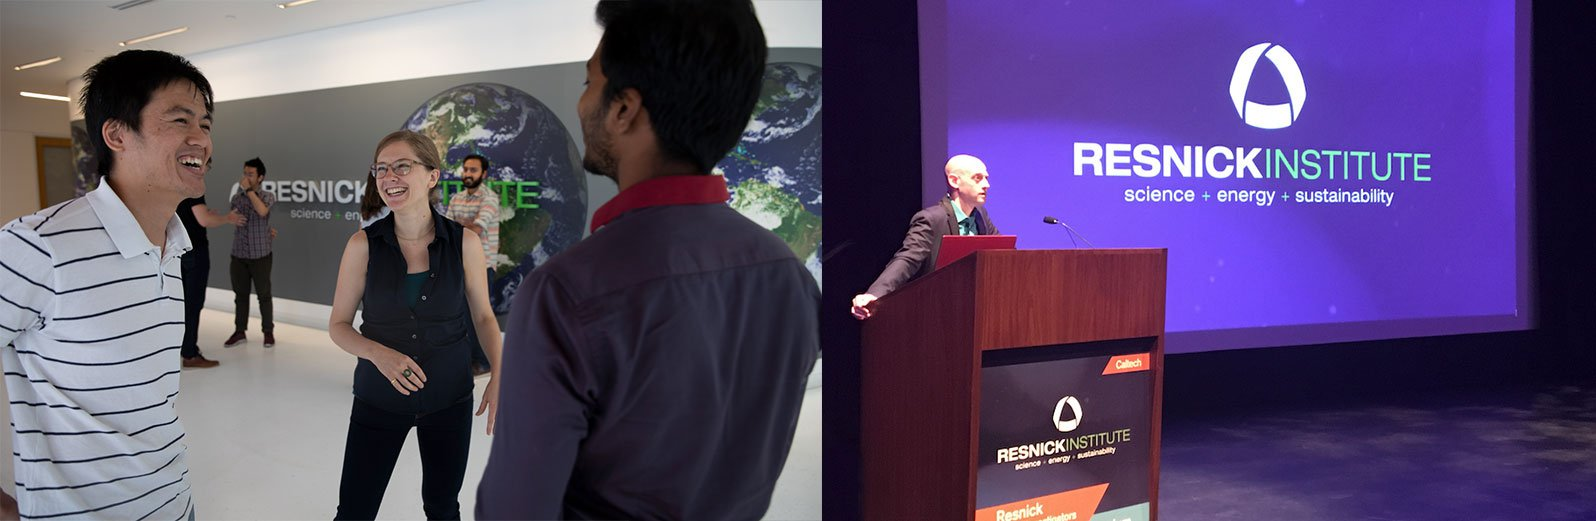 Resnick Fellows Meet up in Lobby (L) Opening Welcome at Young Investigator's Symposium (R)